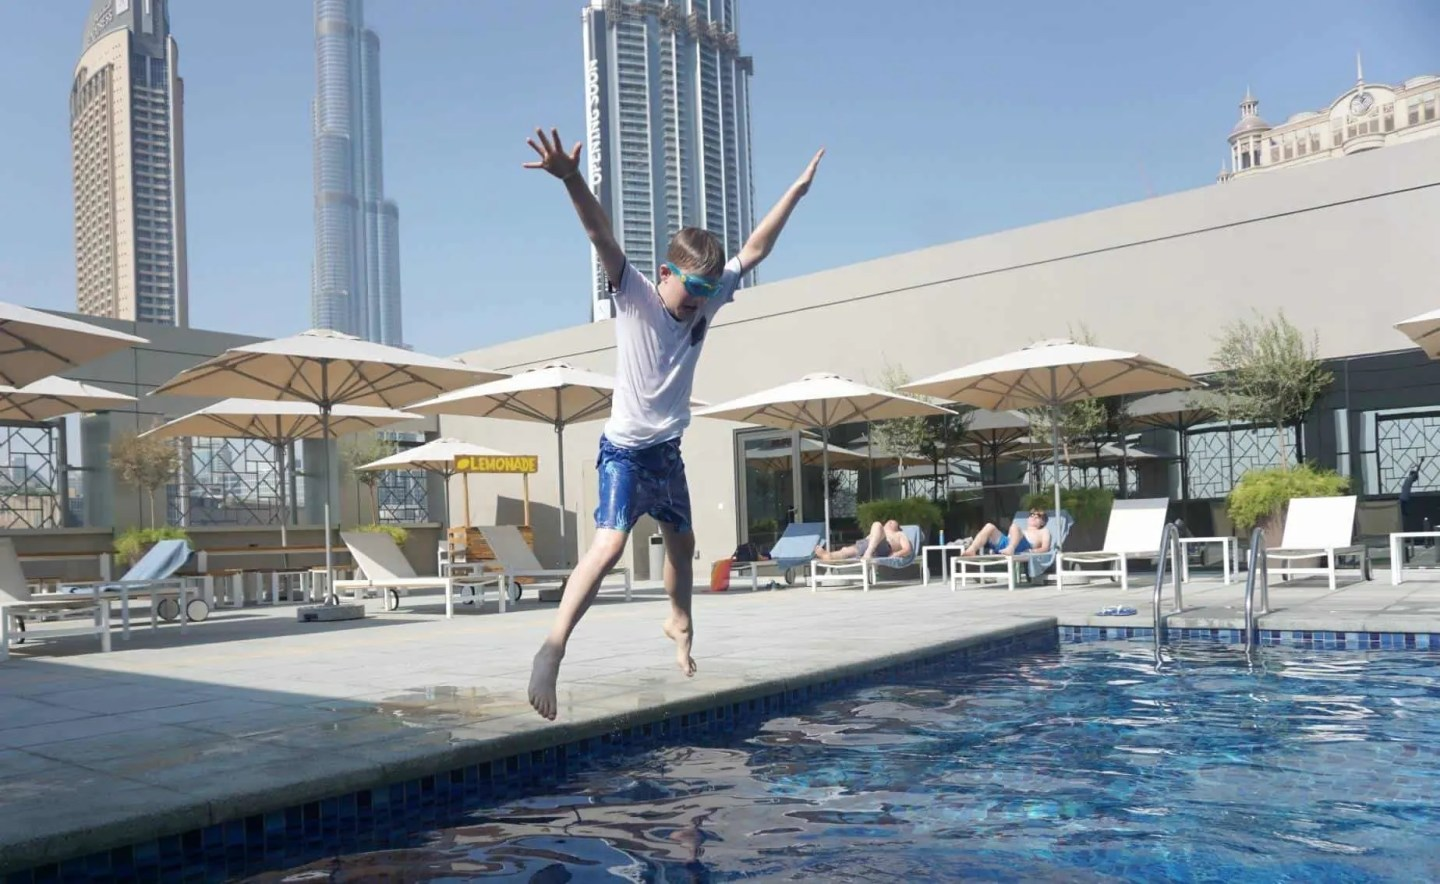 The Rove Downtown Dubai, A Wonderful Budget Hotel In Dubai that is great for families www.extraordinarychaos.com